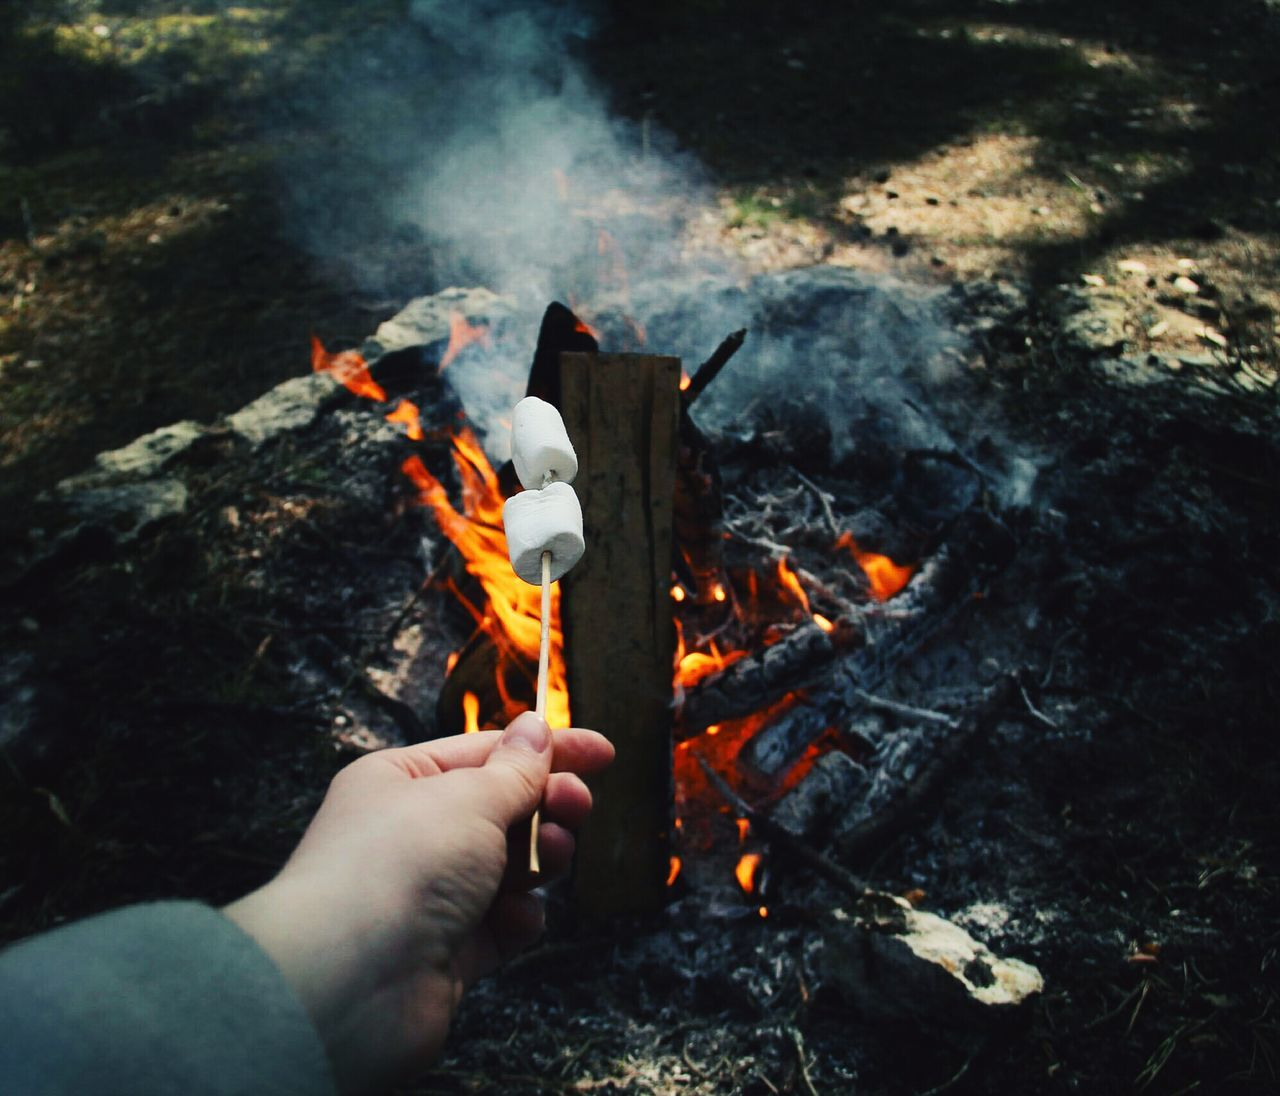 Human Hand Flame Burning Human Body Part One Person Heat - Temperature Holding People Smoke - Physical Structure Outdoors Bonfire One Man Only Real People Adult Campfire Adults Only Only Men Close-up Men Night